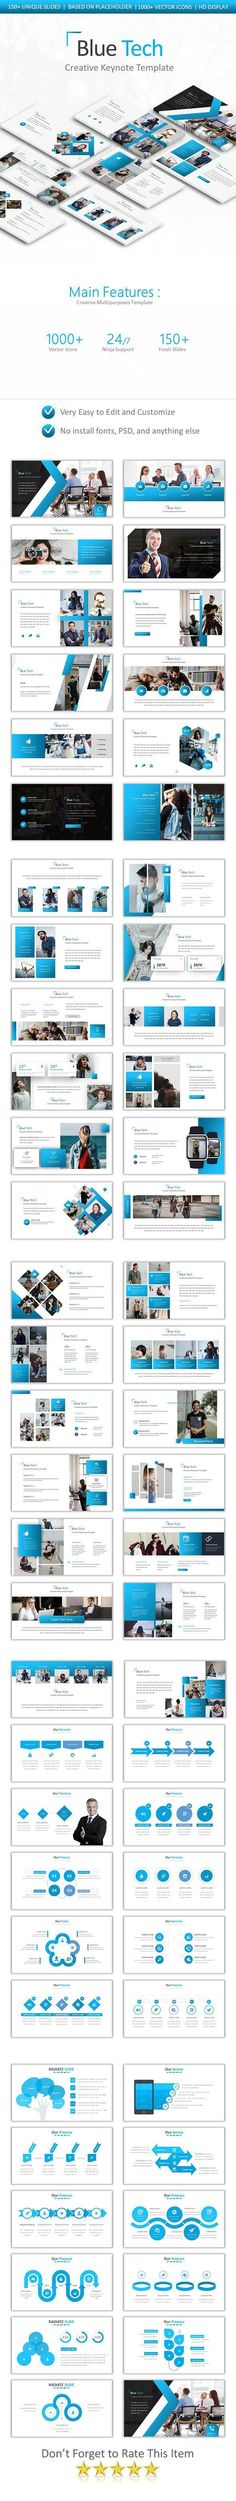 Buy Blue Tech Keynote Template by Pro_Tools_Design on GraphicRiver. Main Fitures: Unique Slides Based on Placeholders HD Display Keynote Files Vector Icons Highly Editab. Professional Powerpoint Templates, Business Powerpoint Templates, Keynote Template, Presentation Design Template, Design Templates, Tool Design, Tech, Typography, Social Media